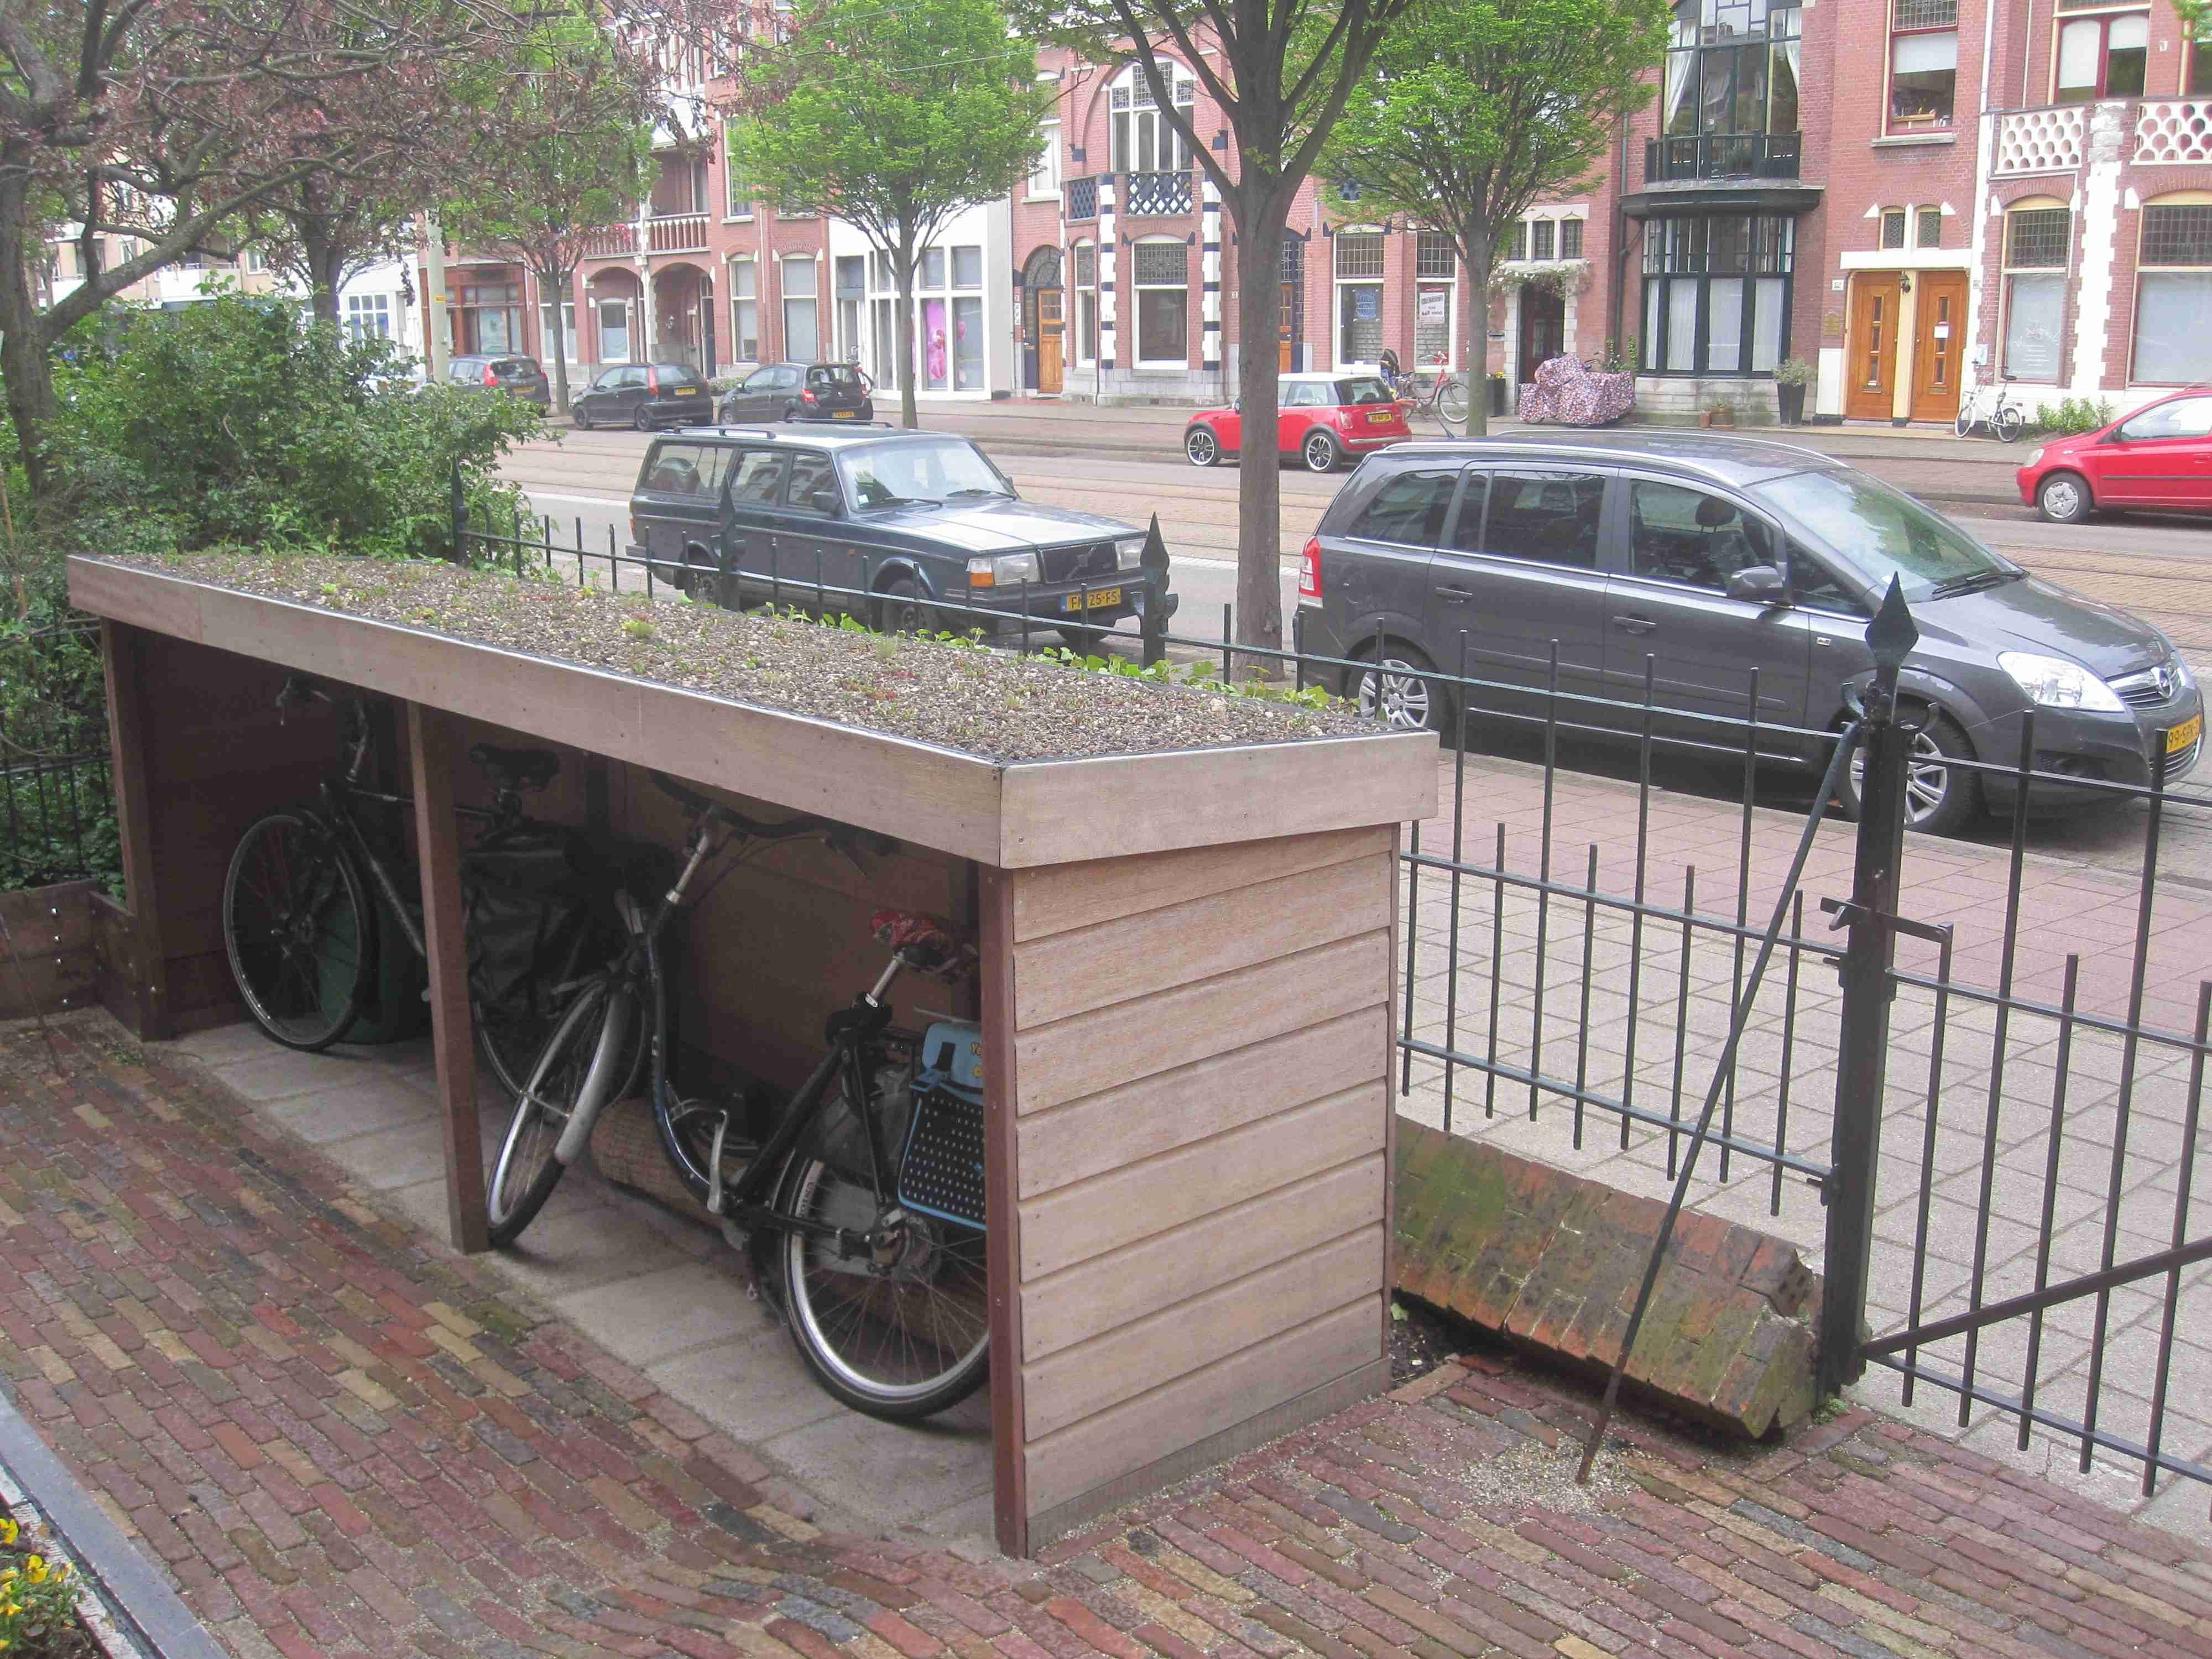 Bike Sheds Plans For Home | BIKE SHED PLANS FREE PLANS EASY KINDLING STREW  PLANS. Outdoor Bike StorageBicycle ...